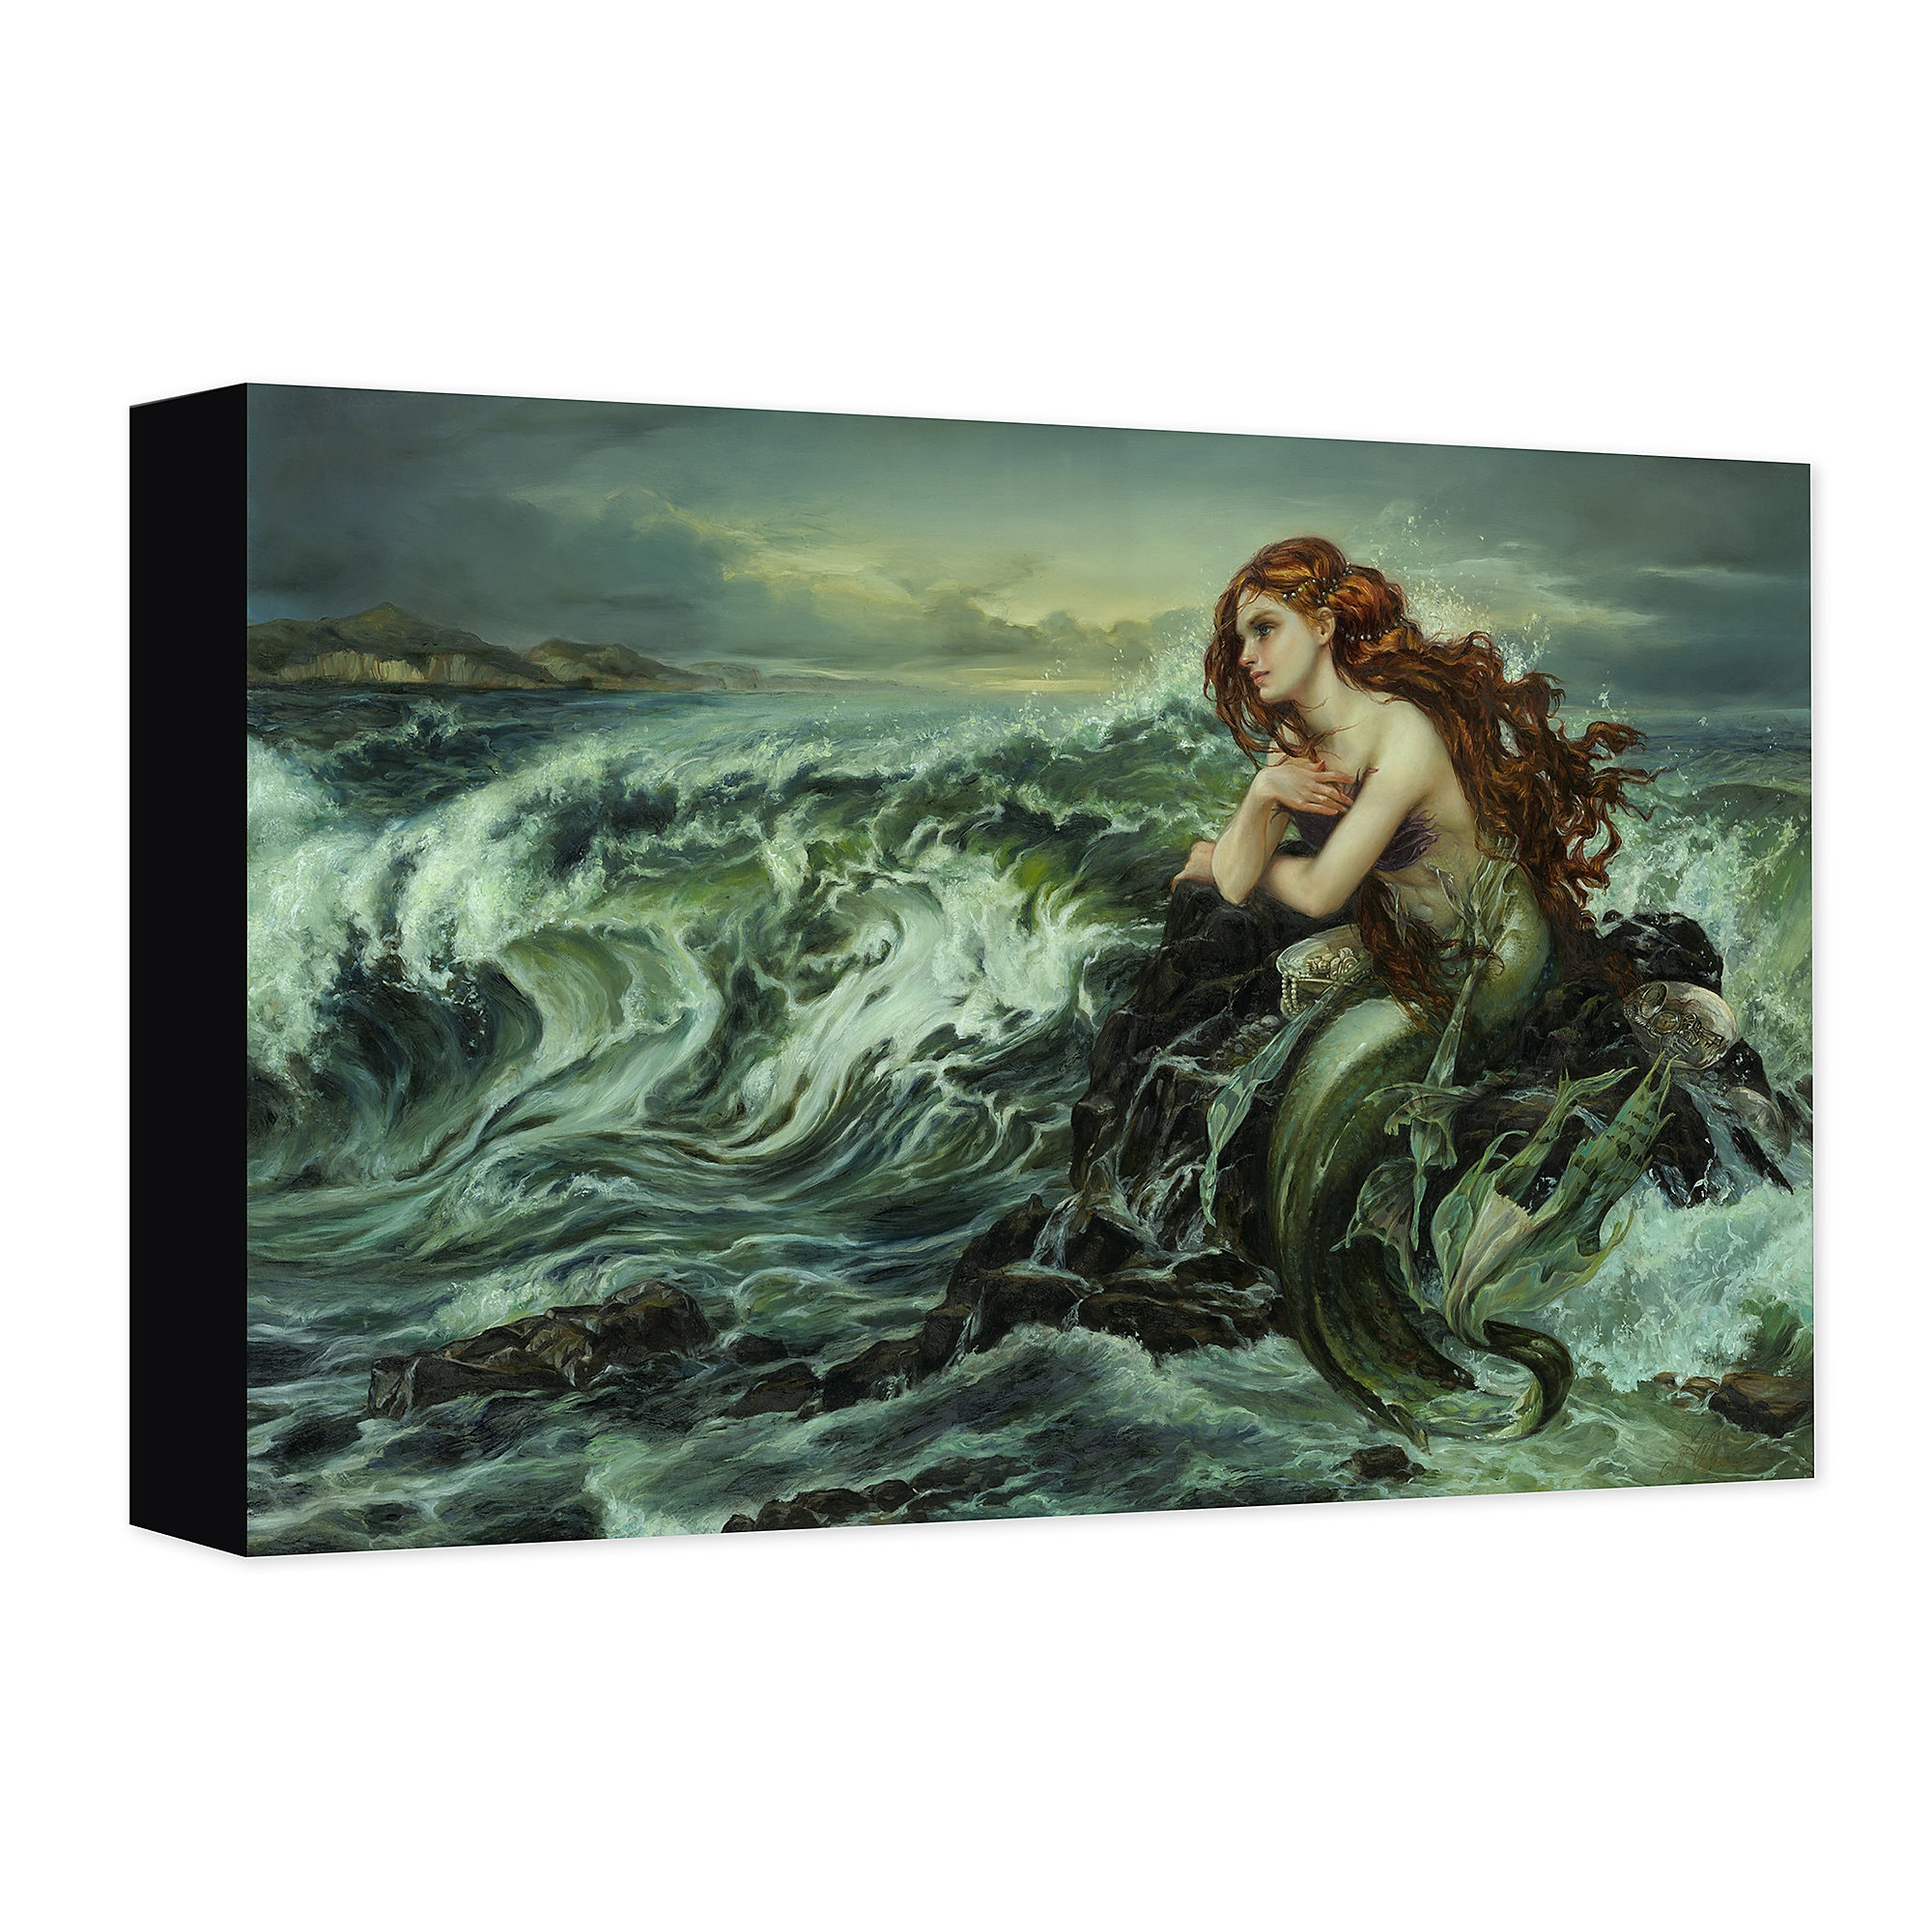 Ariel ''Drawn to the Shore'' Giclée on Canvas by Heather Theurer